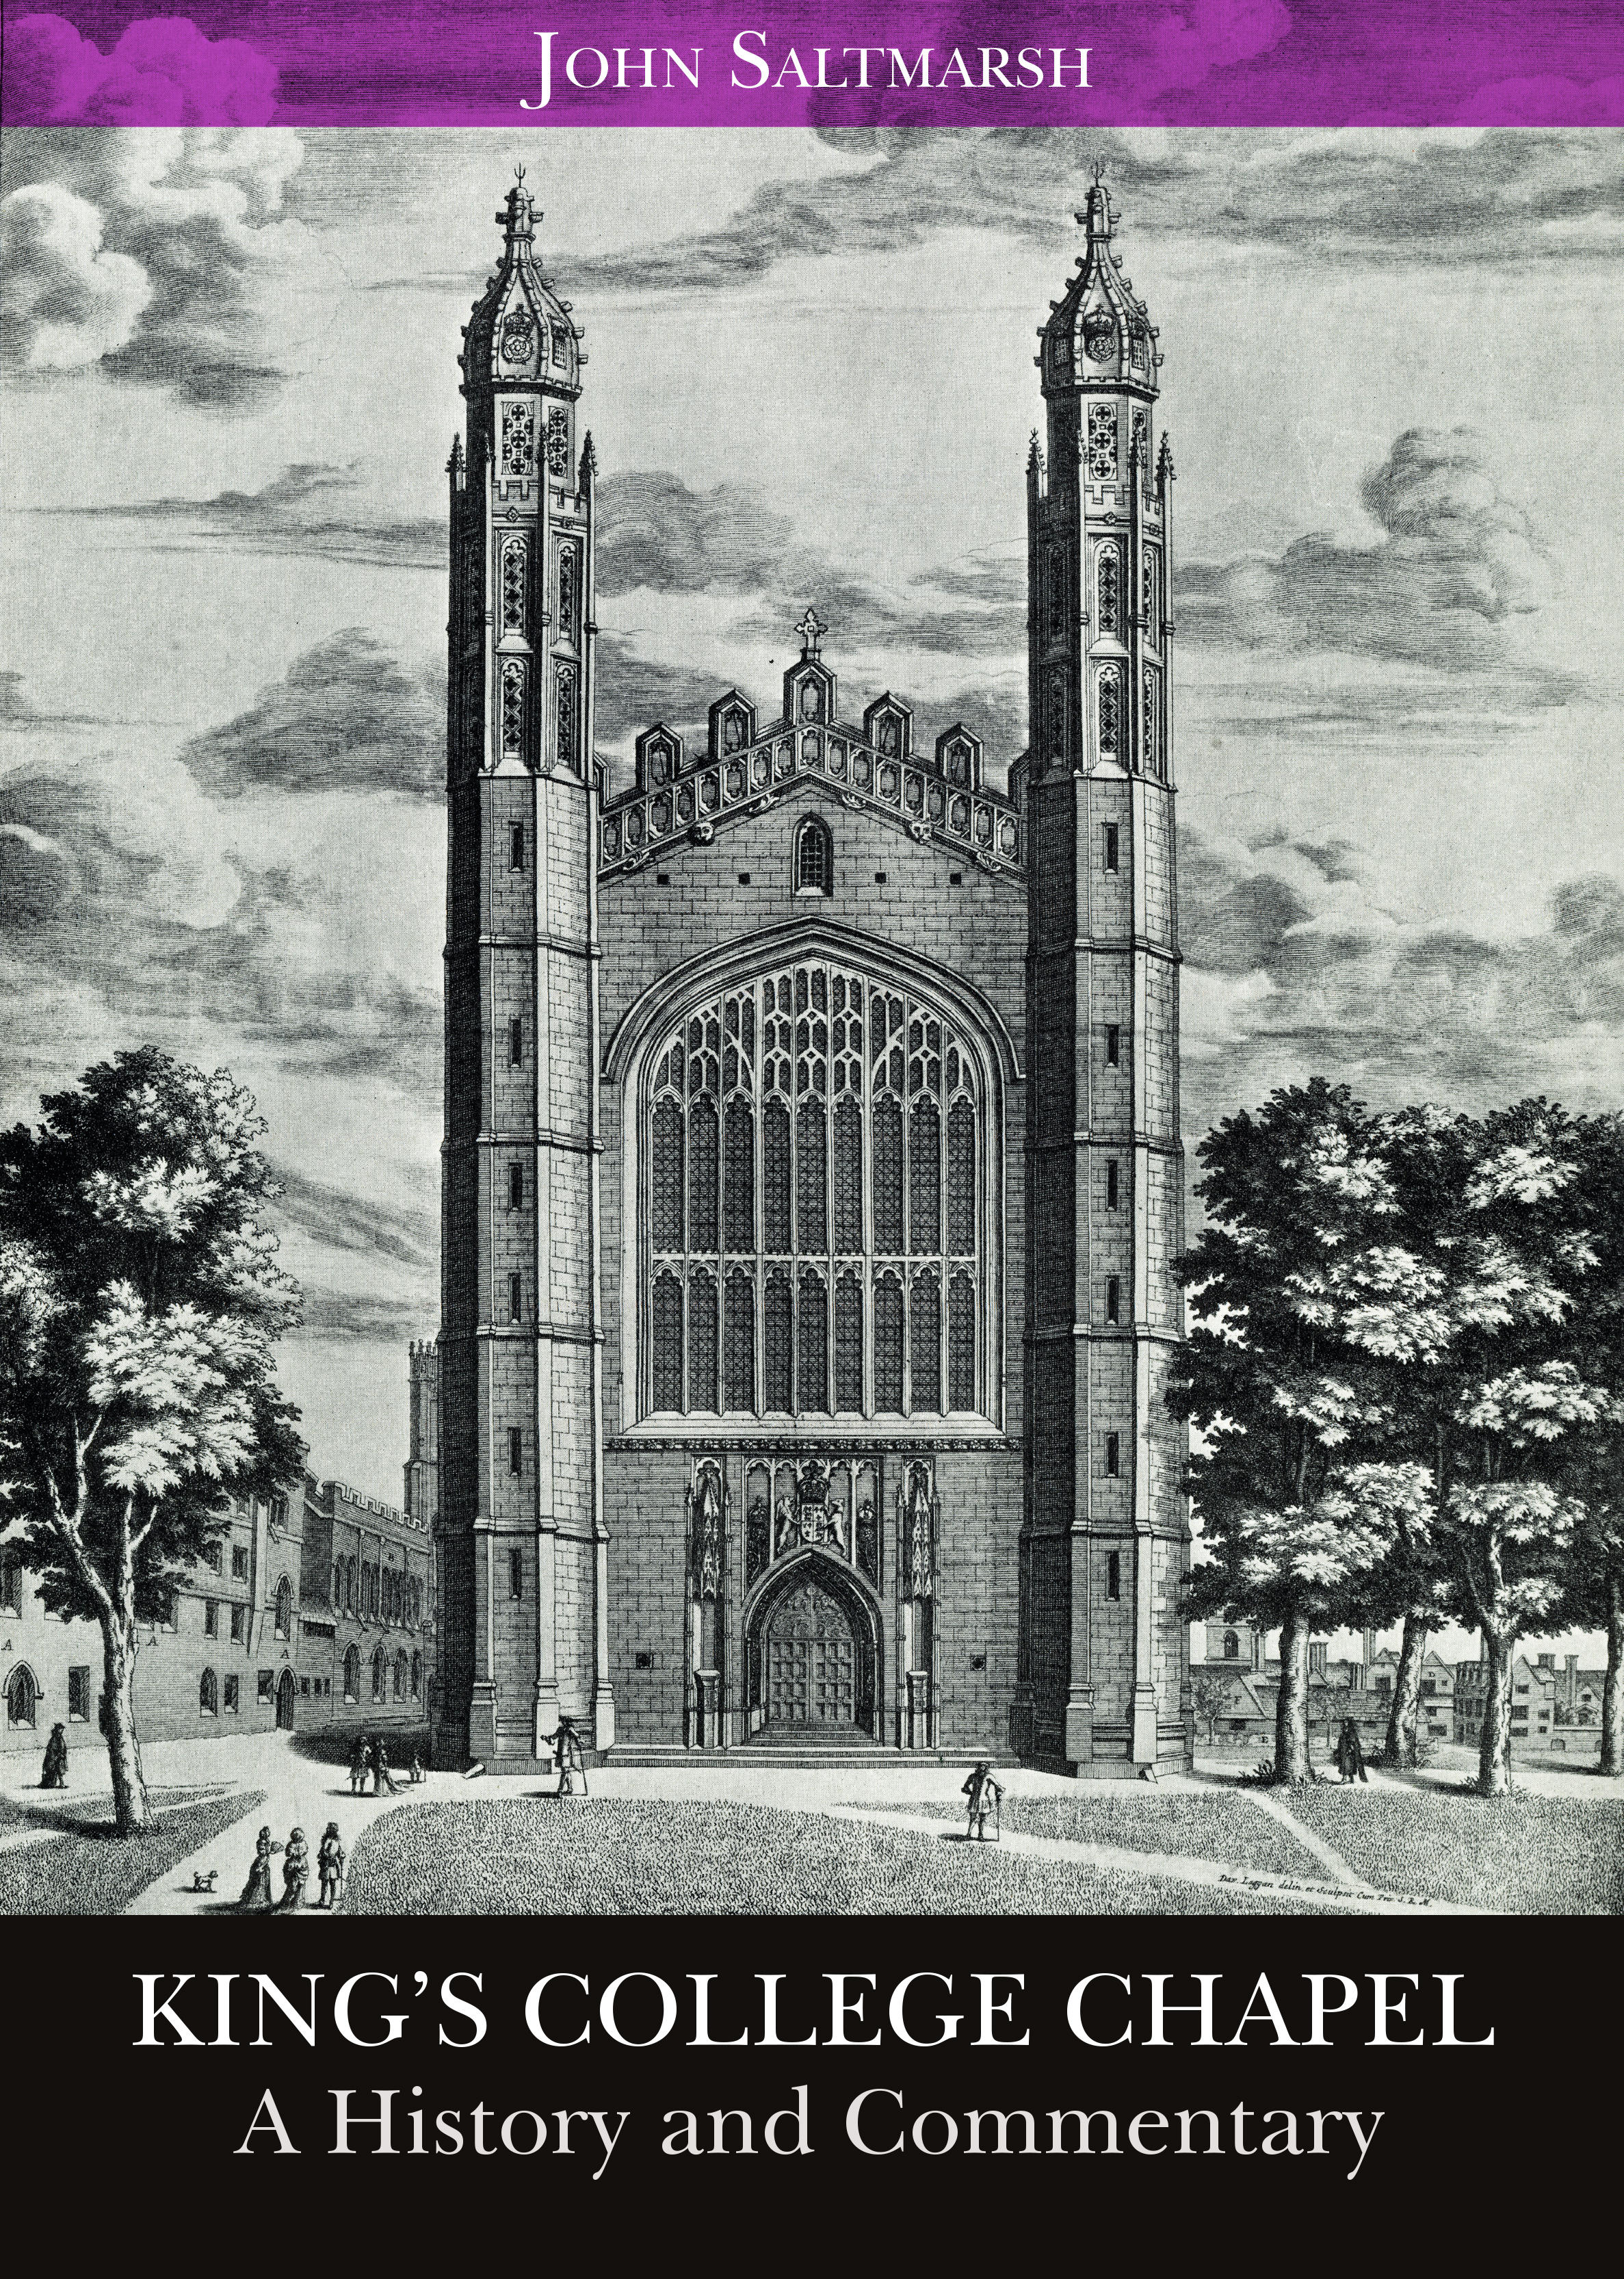 John Saltmarsh - King's College Chapel